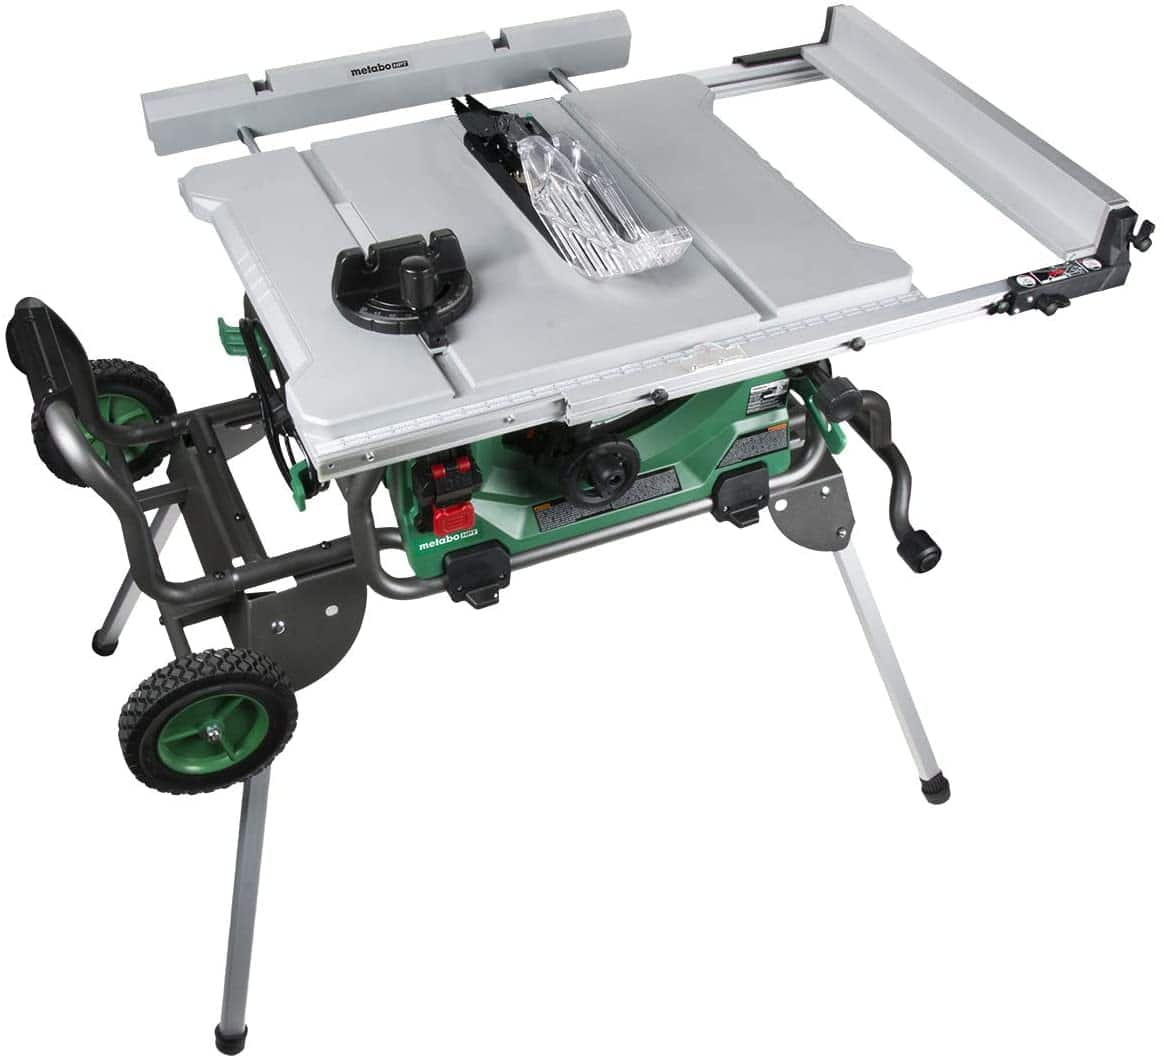 Metabo HPT Jobsite Table Saw, 10-Inch Carbide Tipped Blade, 35-Inch Rip Capacity, Fold & Roll Stand, 8 x 13/16-Inch Dado Capacity (C10RJS) $384.28